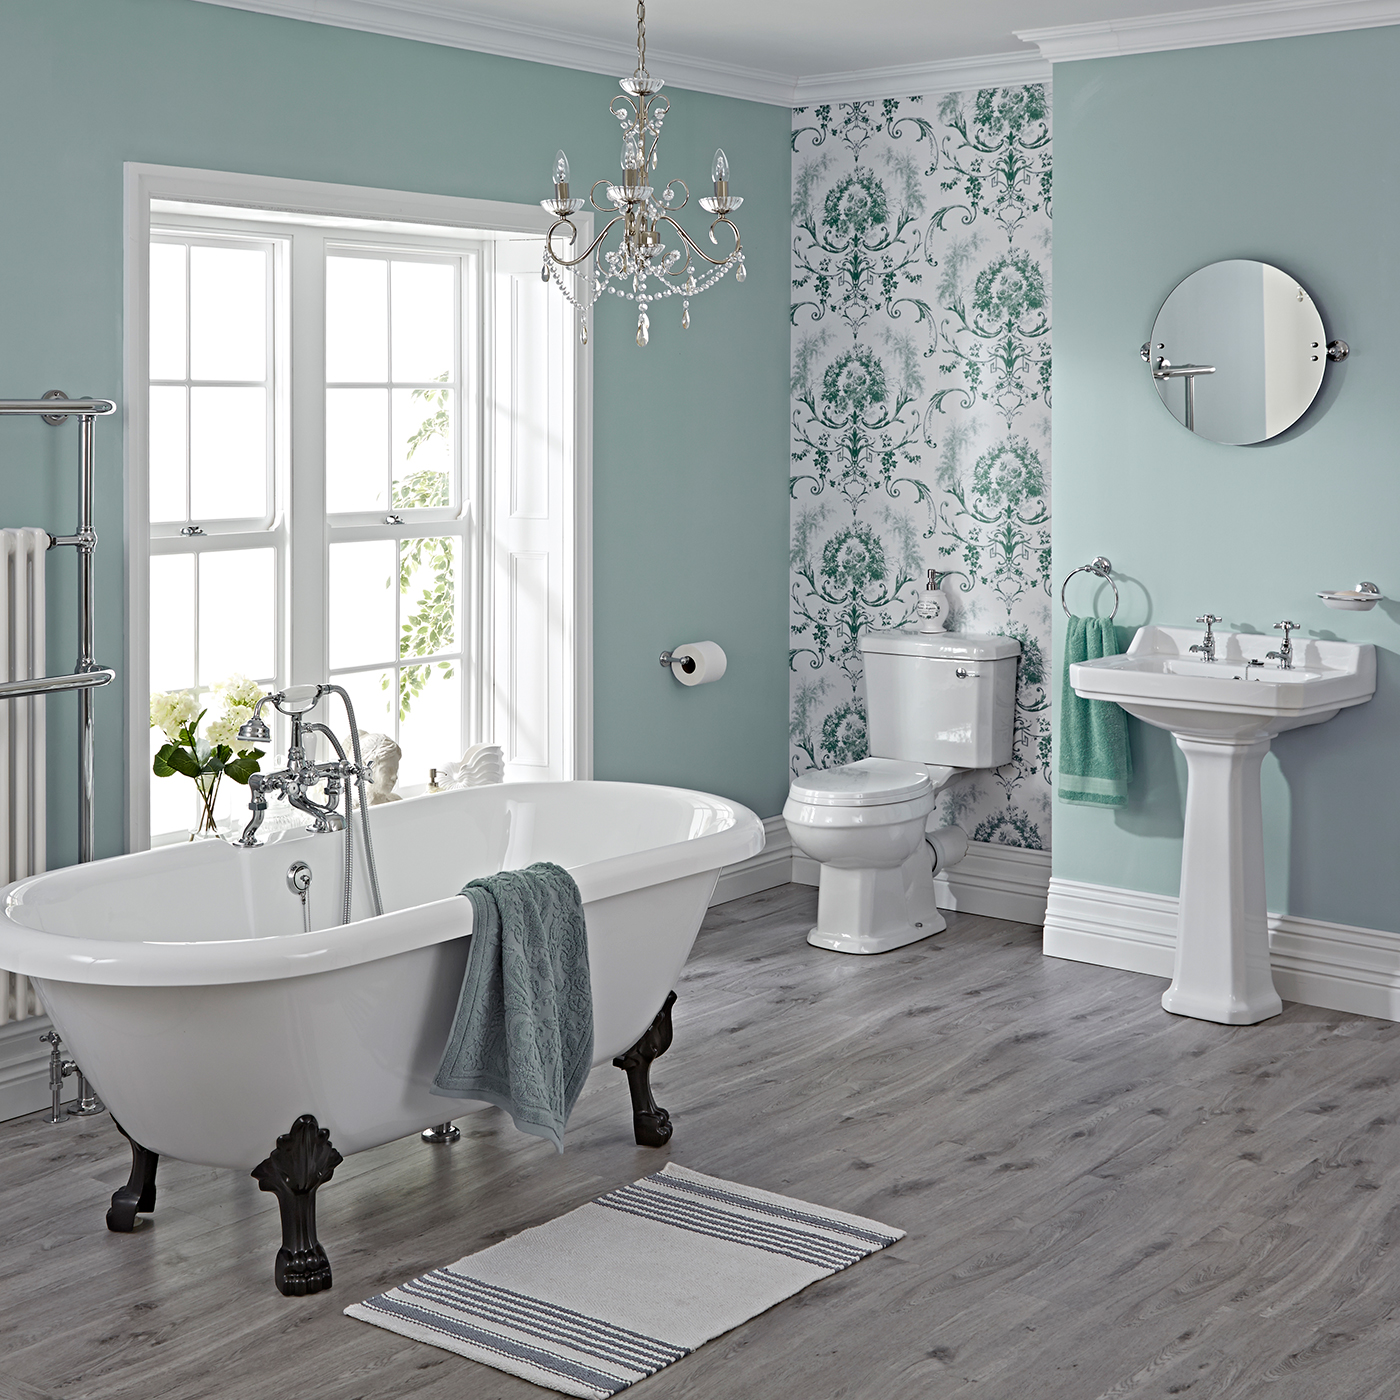 Comvictoria Plumb Bathrooms : Selecting and Learning Bathing Furniture at Victoria Plumb Bathroom ...